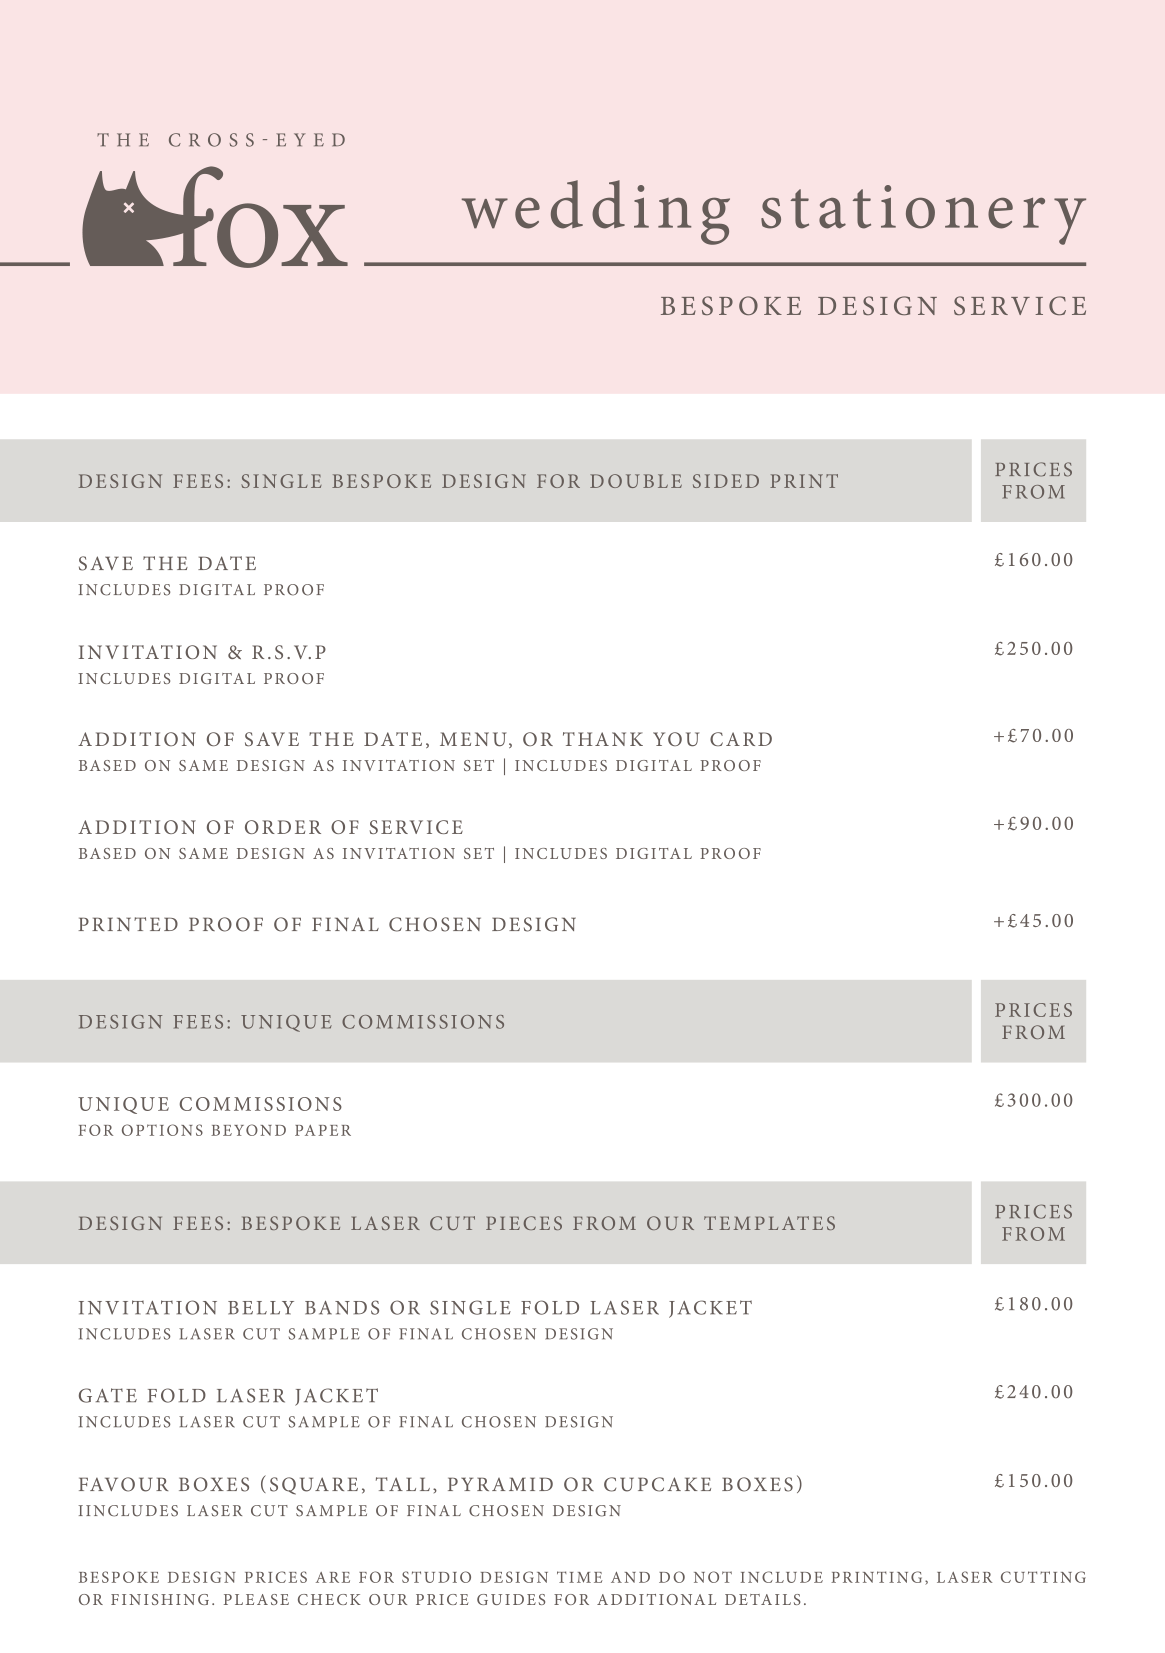 The Cross-Eyed Fox Bespoke Design Services Price Guide 2017/2018